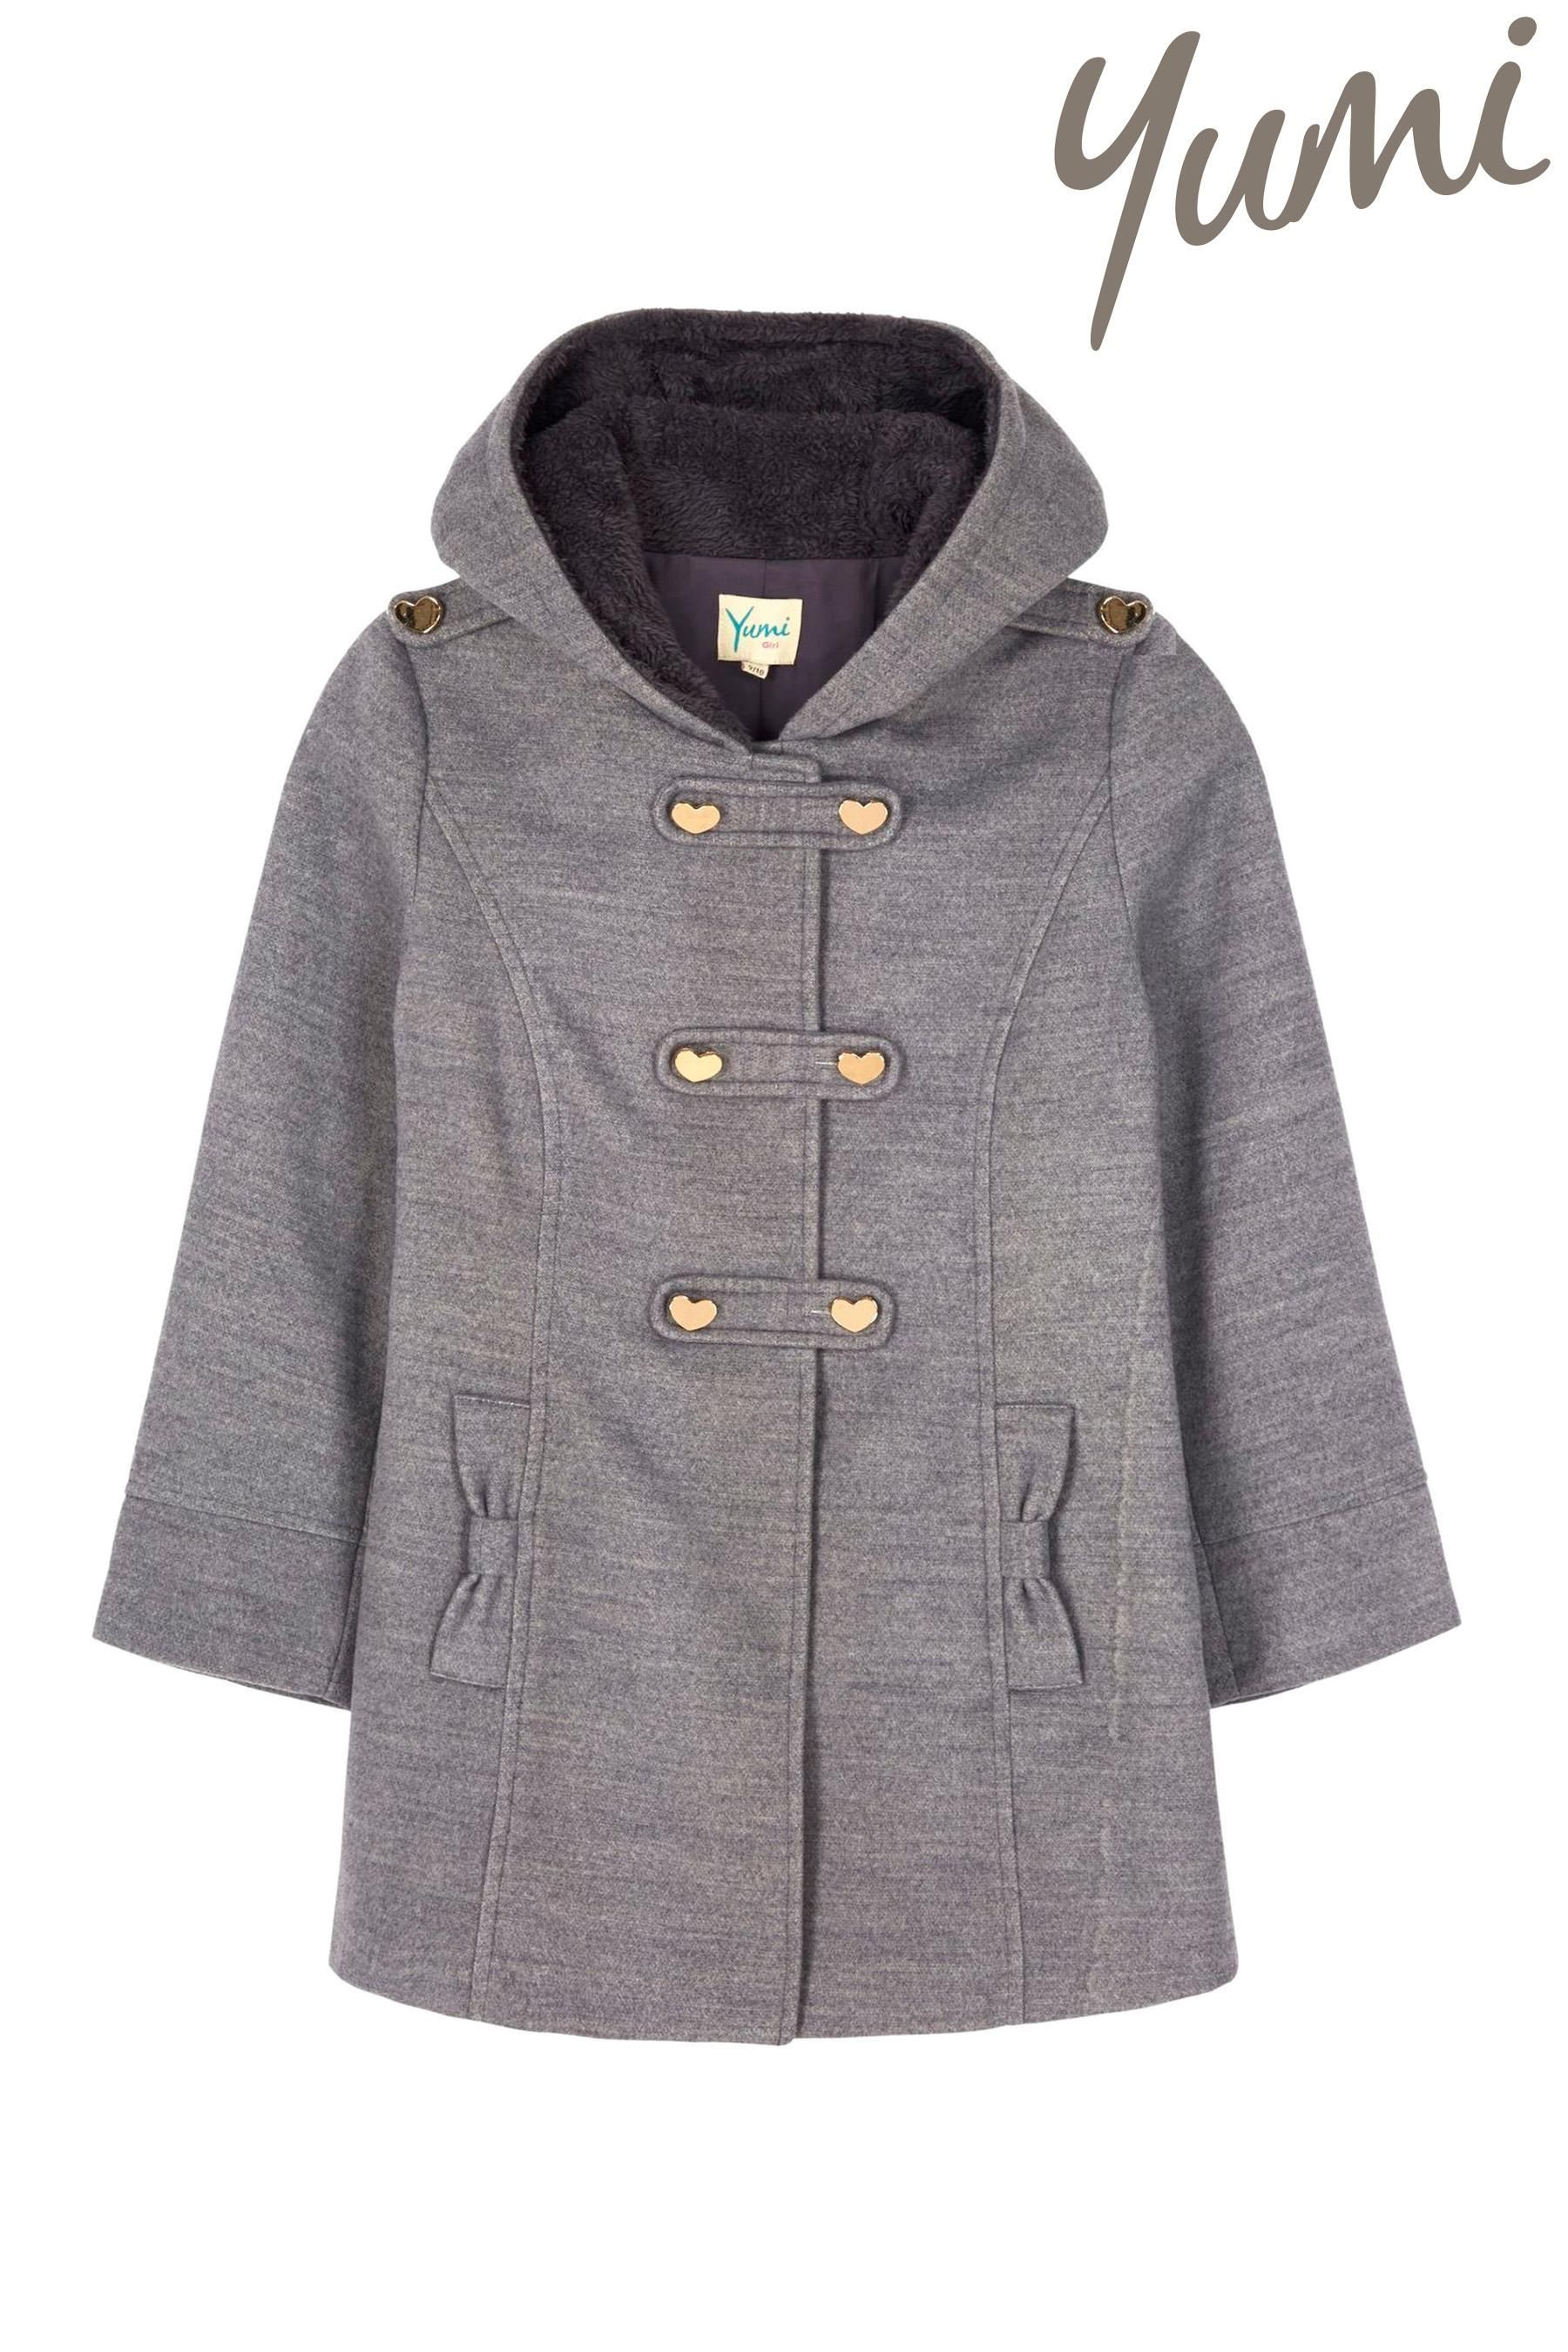 Buy Yumi Girls Heart Duffle Coat (5-14yrs) from the Next UK online ...